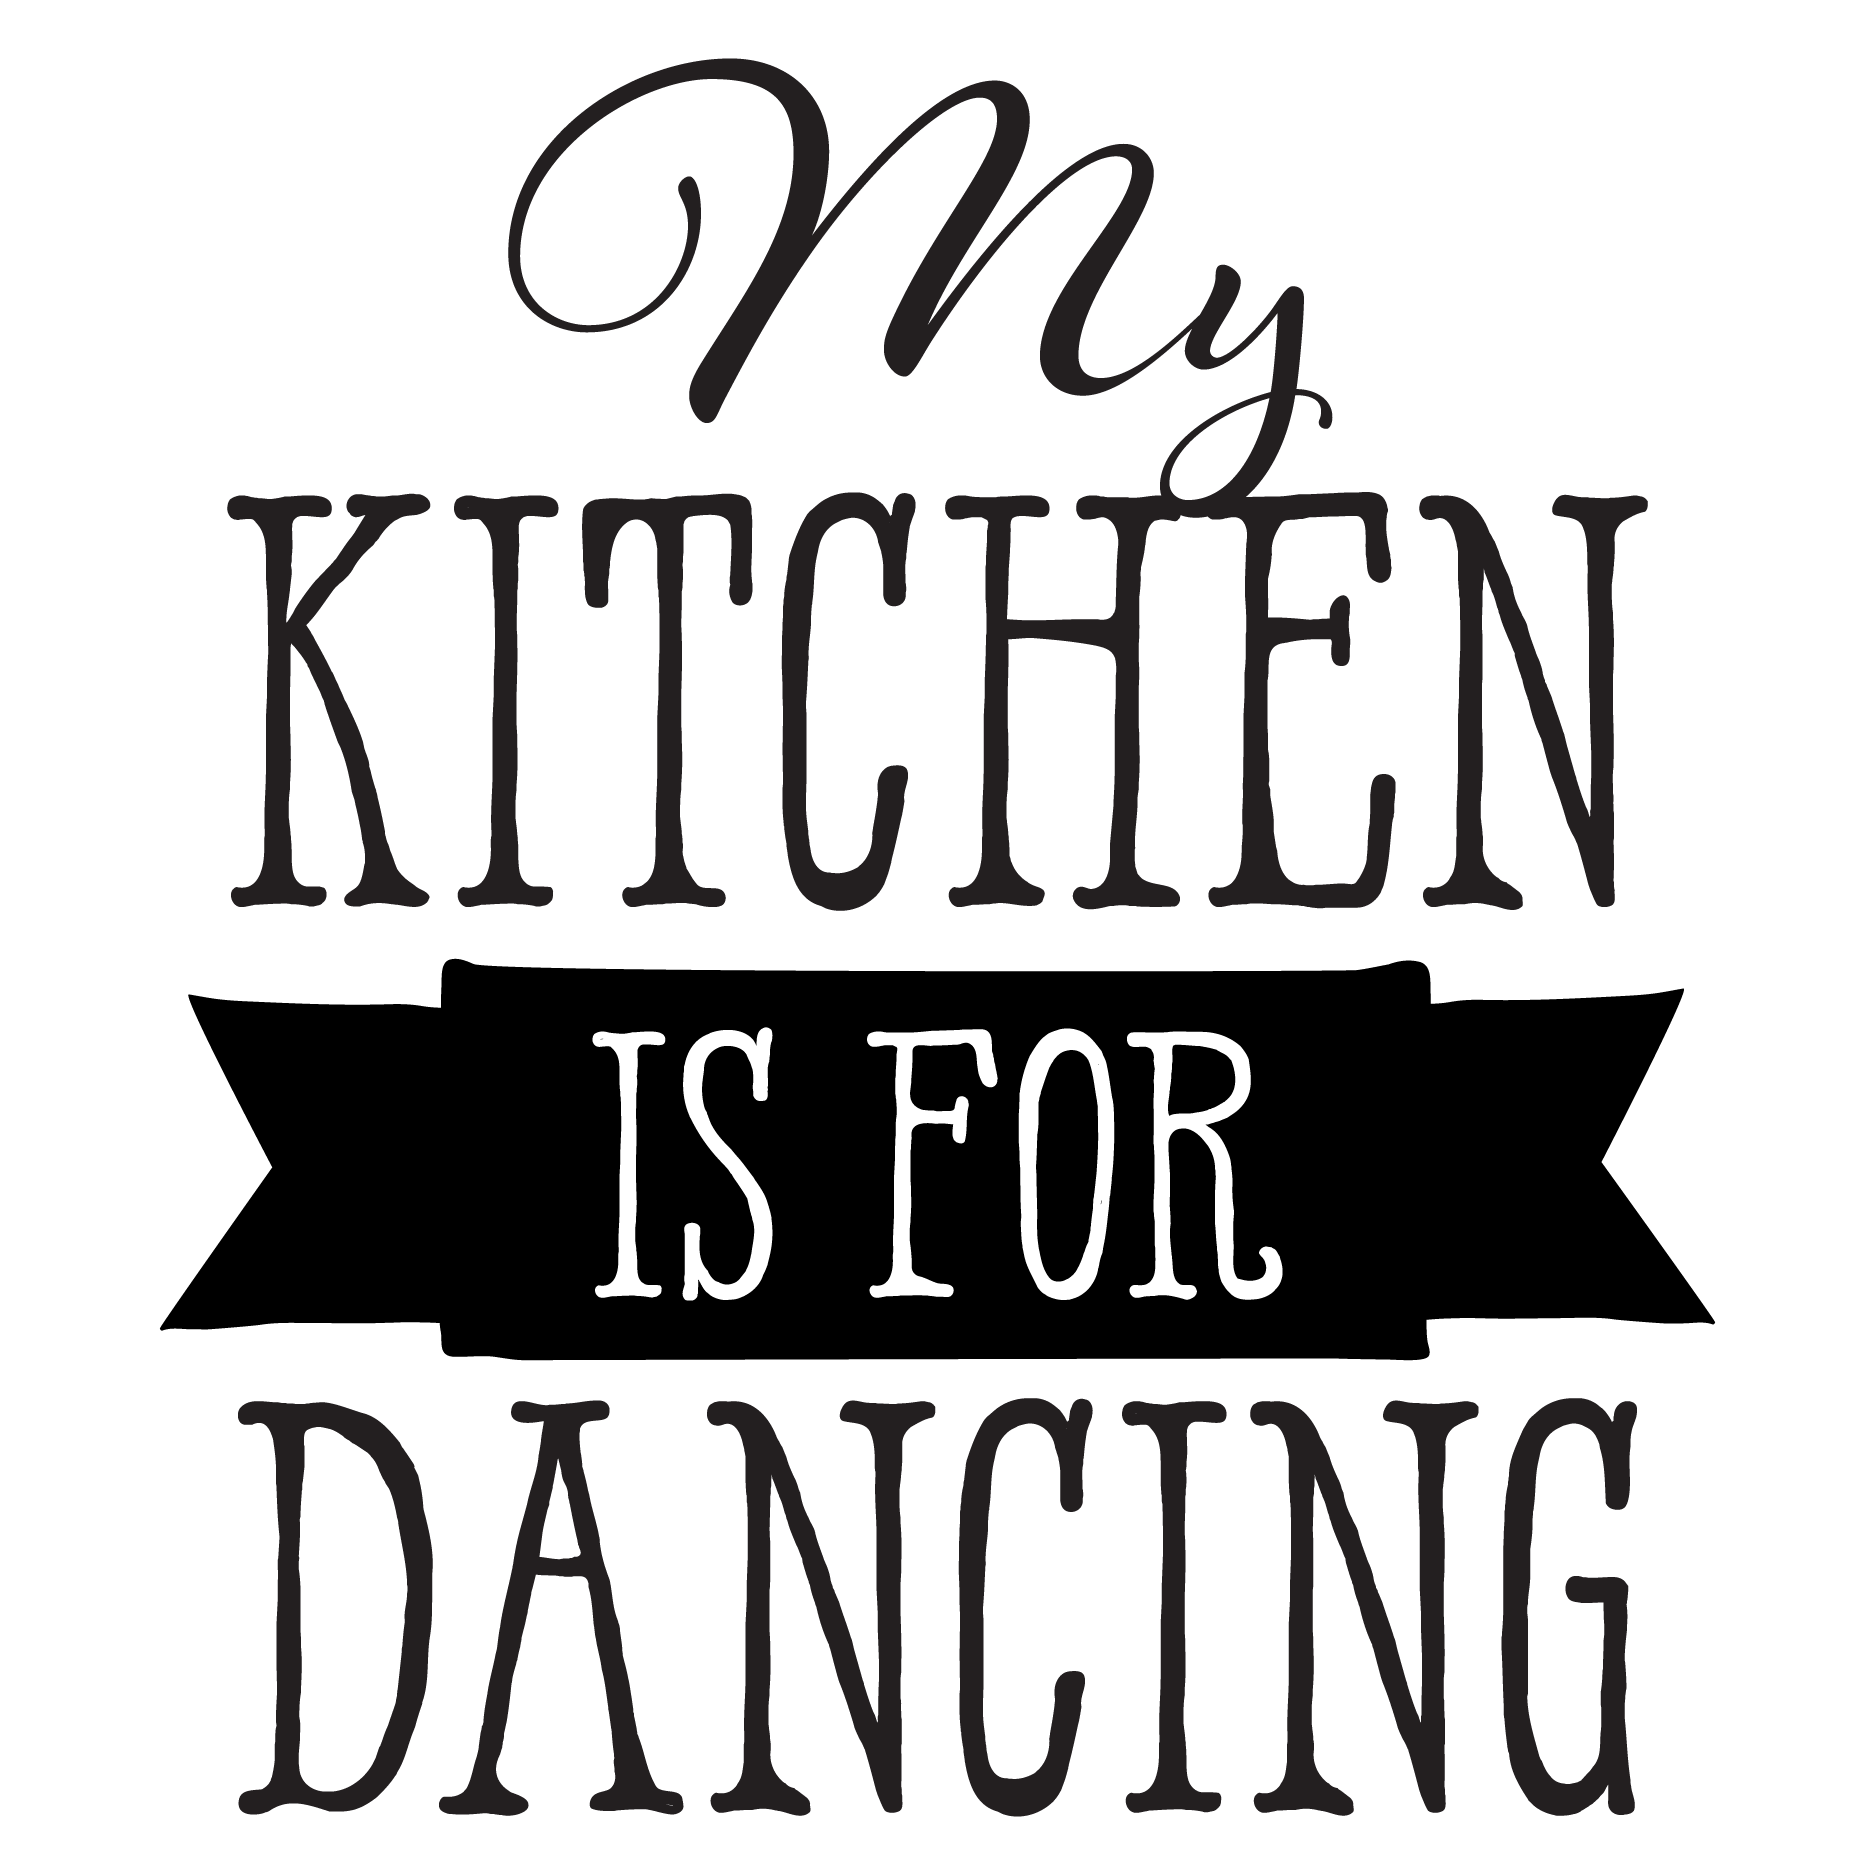 Quotes For The Kitchen: My Kitchen Is For Dancing Wall Quotes™ Decal